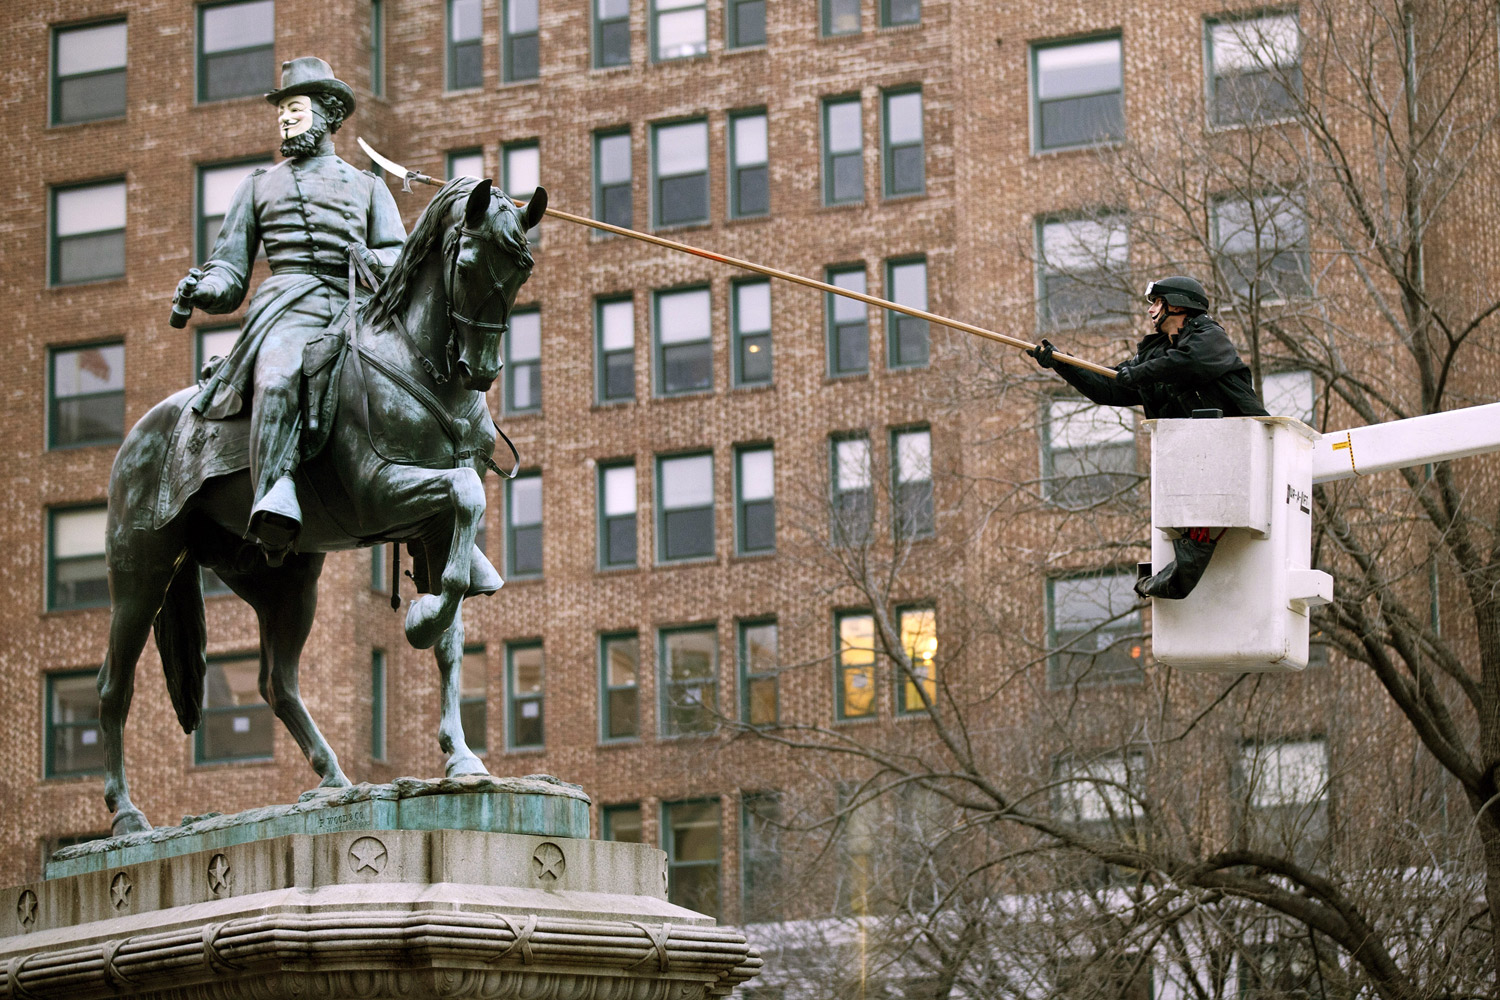 February 4, 2011. A US Park Police officer uses a limb saw to remove a mask of Guy Fawkes from a statue of James McPherson in McPherson Square in Washington, D.C.